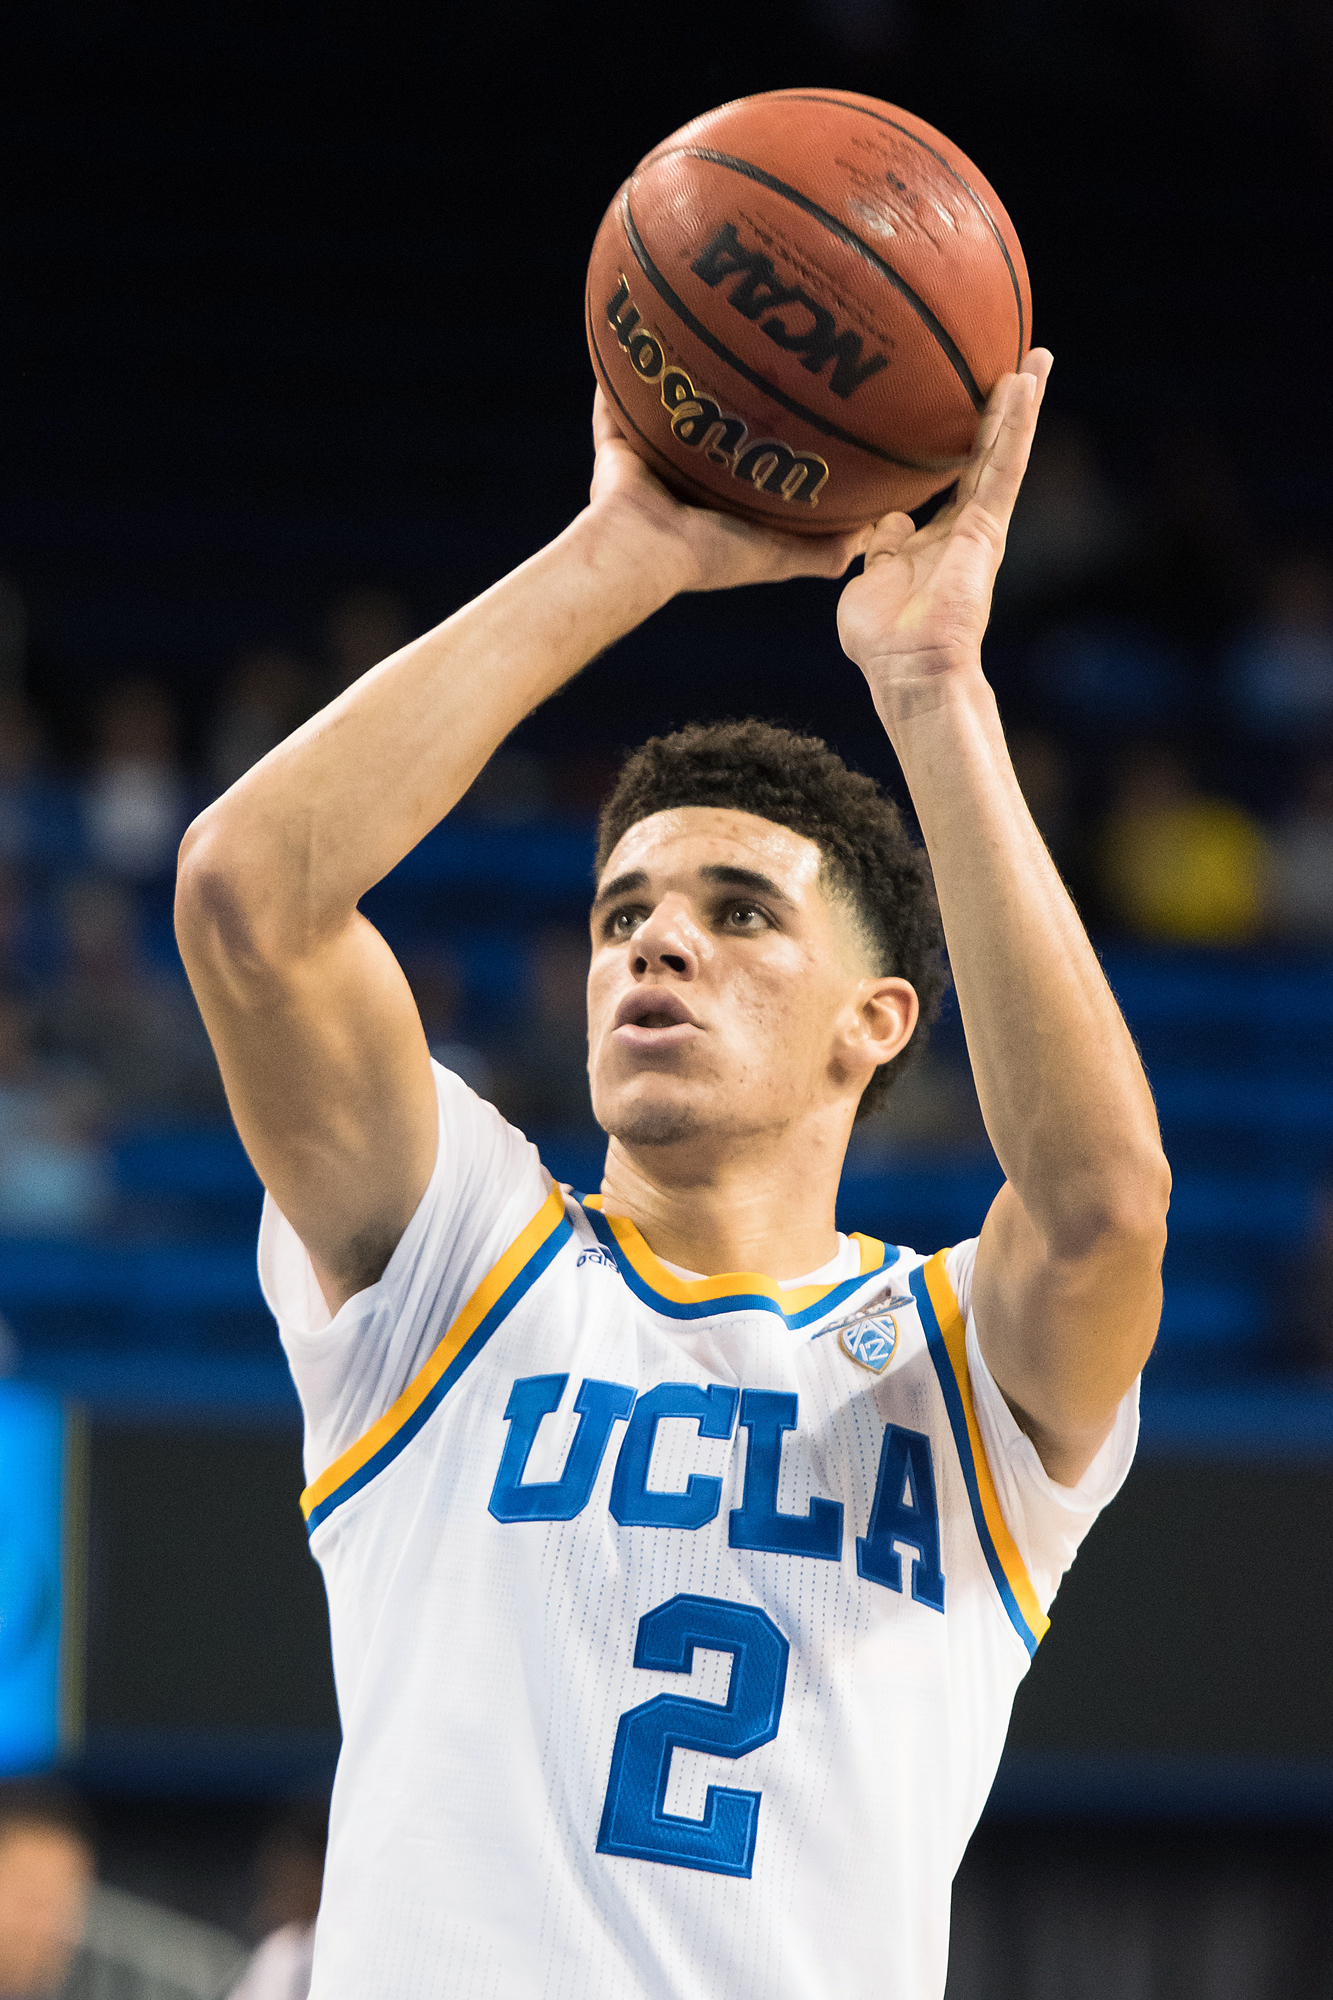 UCLA guard Lonzo Ball (2) shoots a free throw during an exhibition NCAA basketball game between the Master's University and the UCLA Bruins on November 1, 2016, at Pauley Pavilion in Los Angeles, CA.